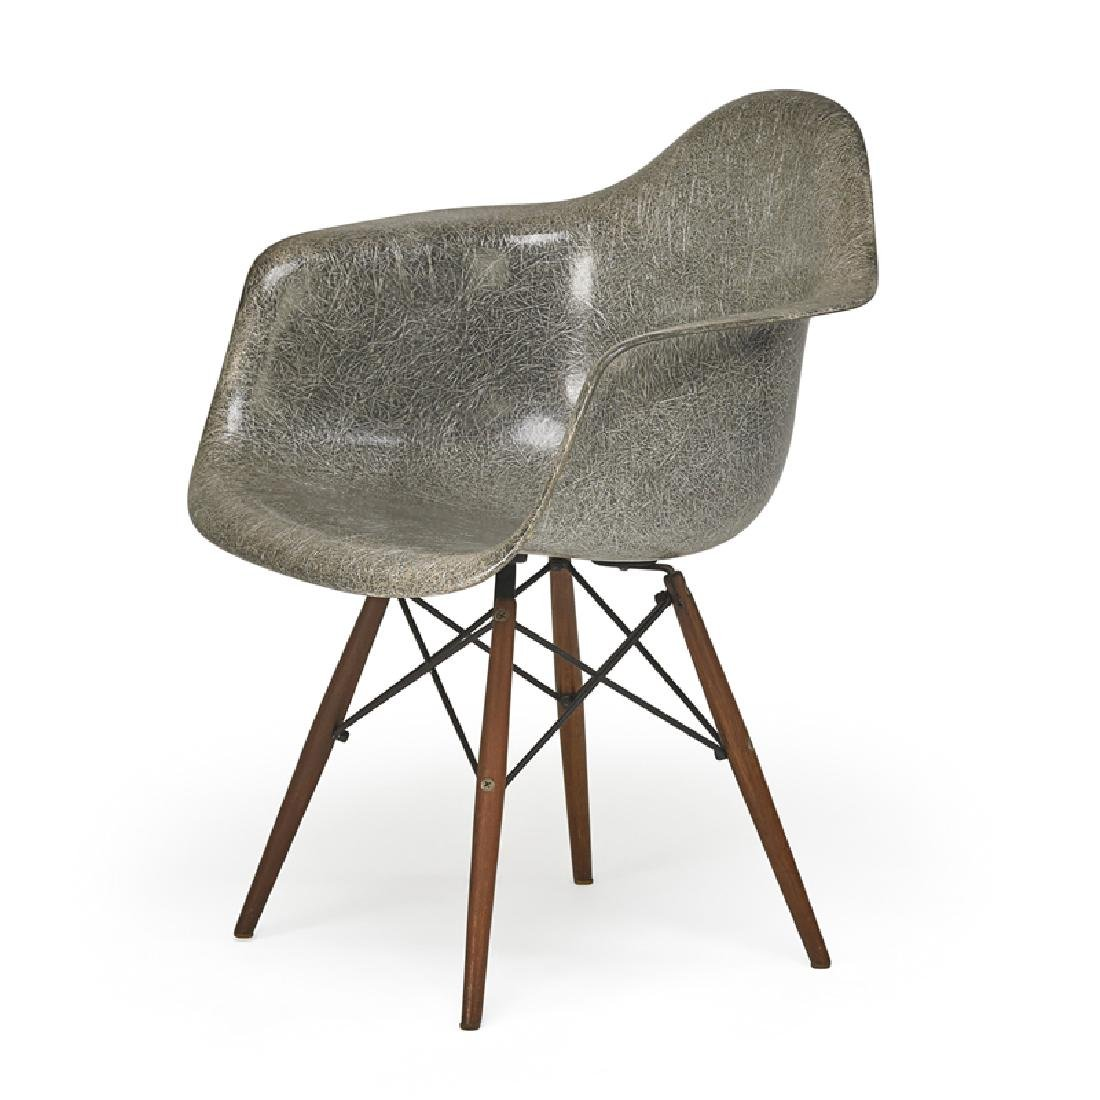 CHARLES & RAY EAMES; HERMAN MILLER/ZENITH Chair - 2